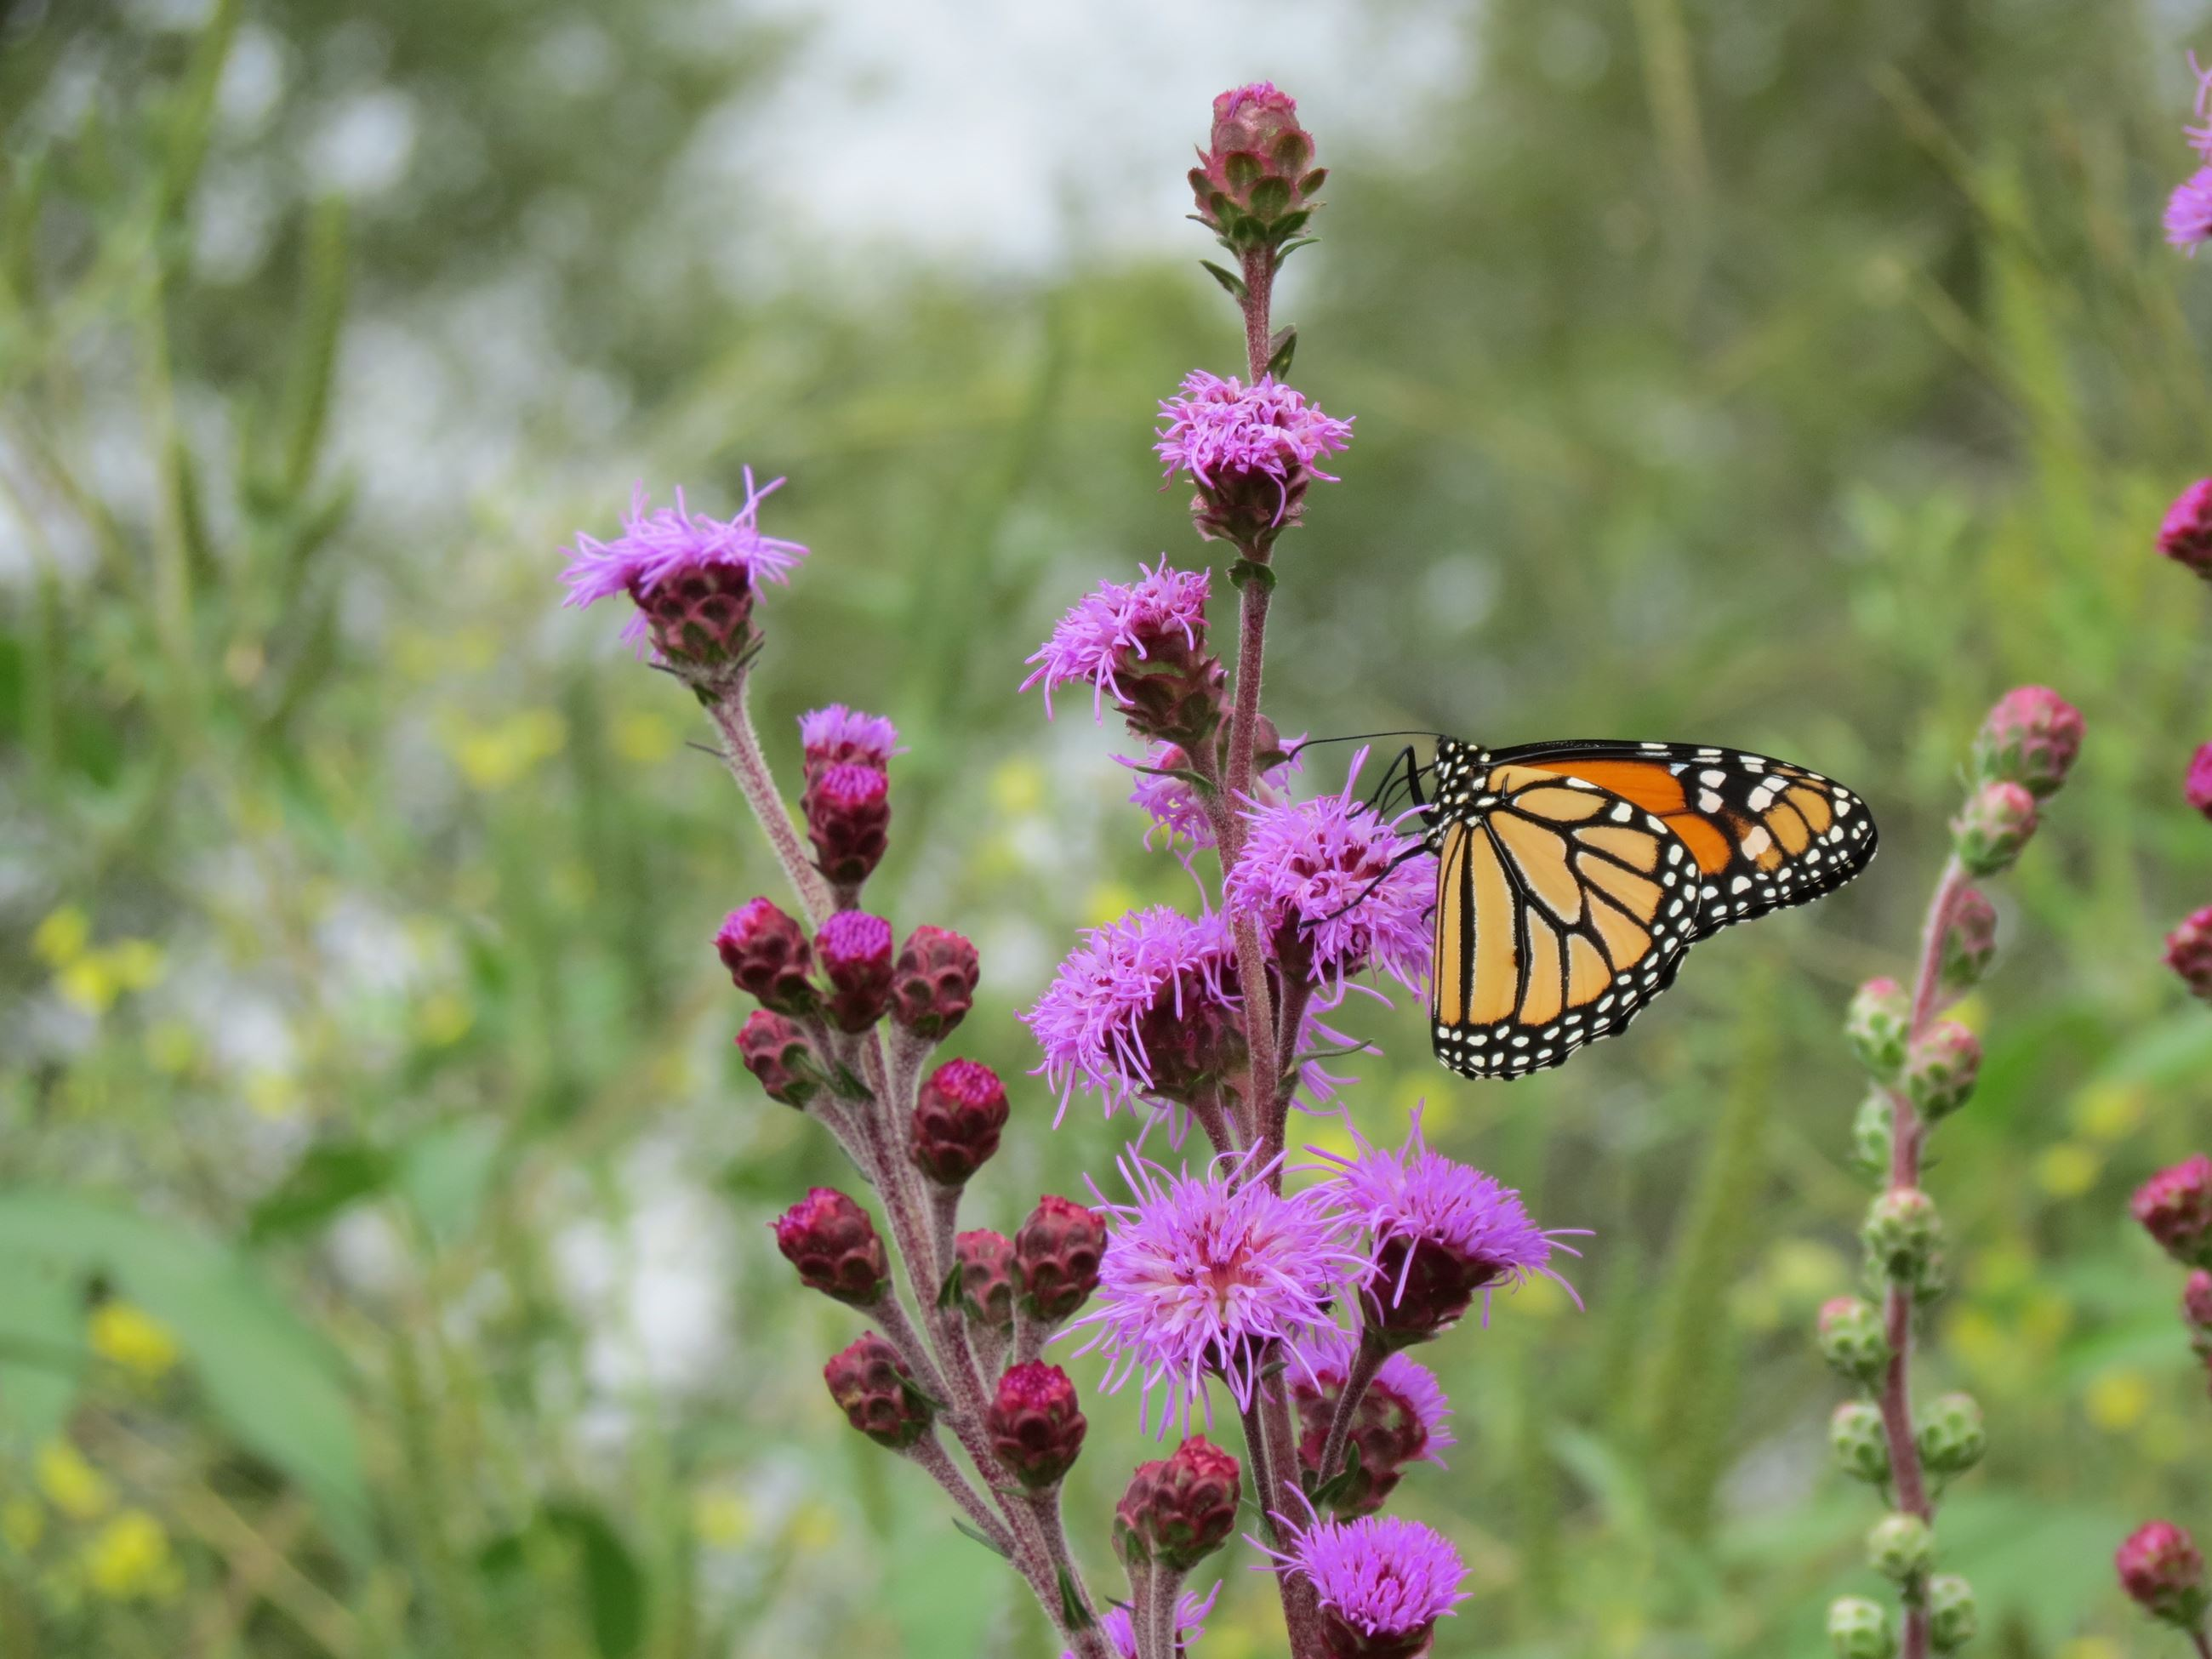 A monarch butterfly sits on a purple blazing star flower